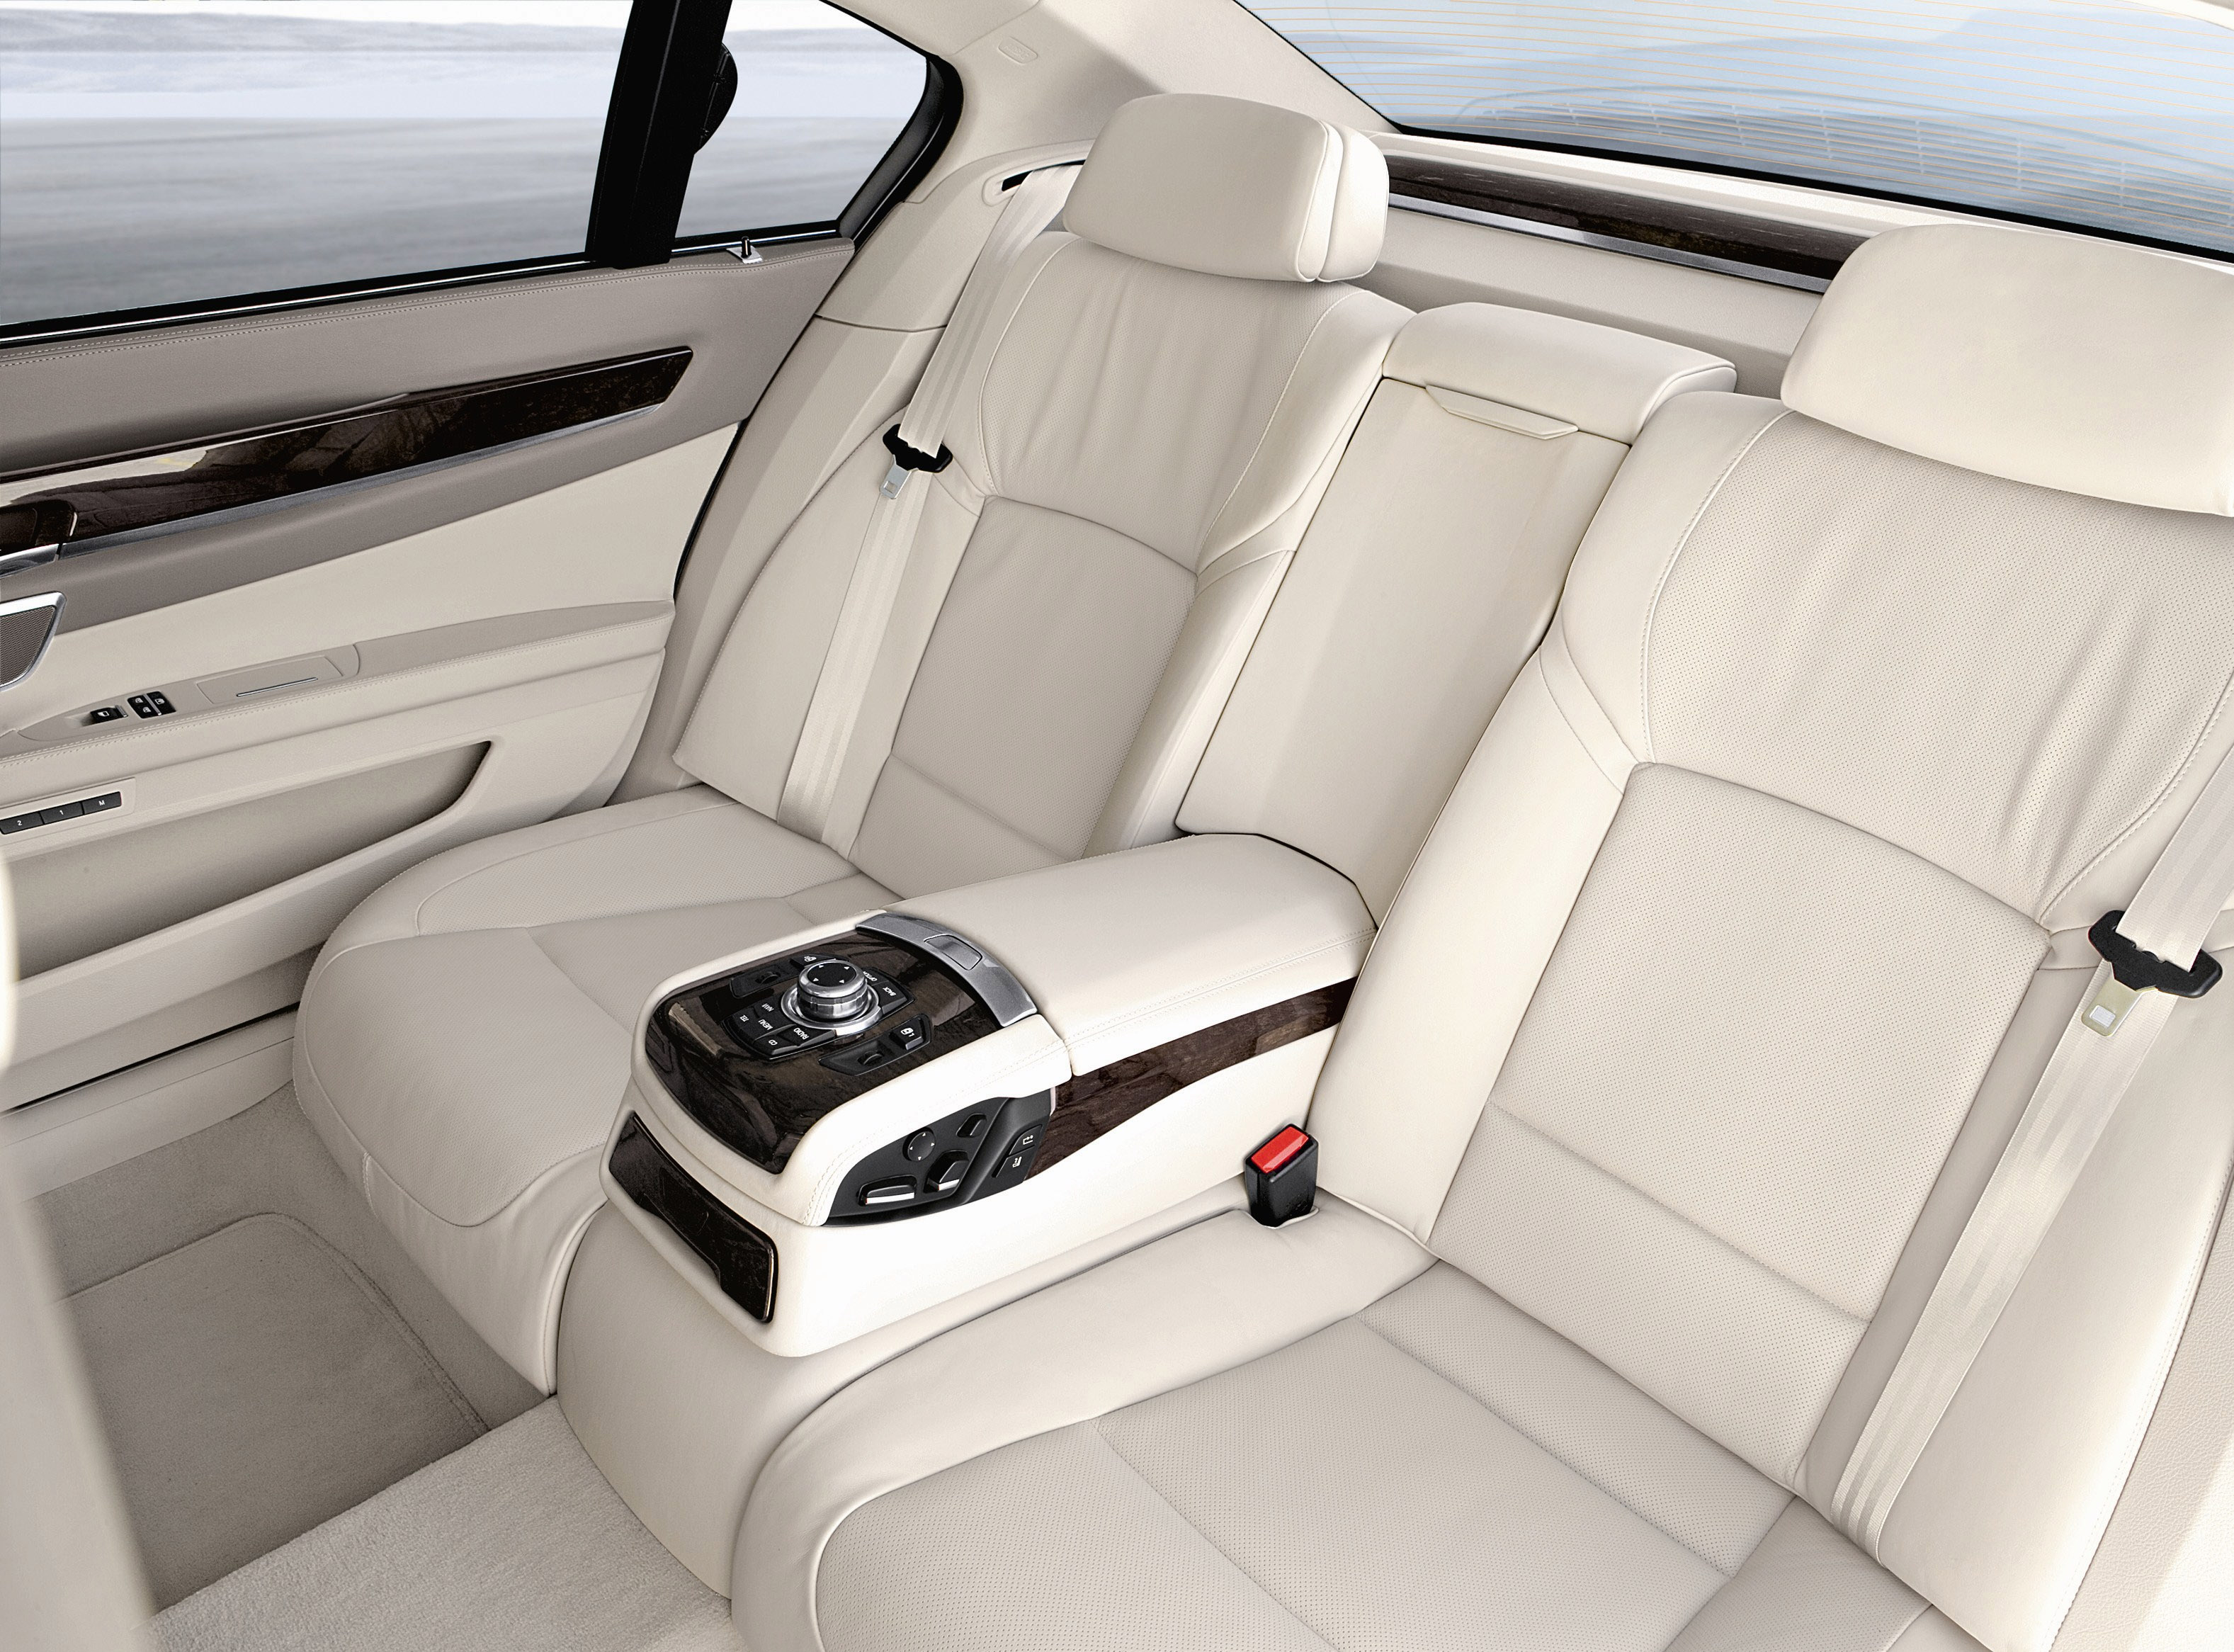 The New Bmw 7 Series Interior 03